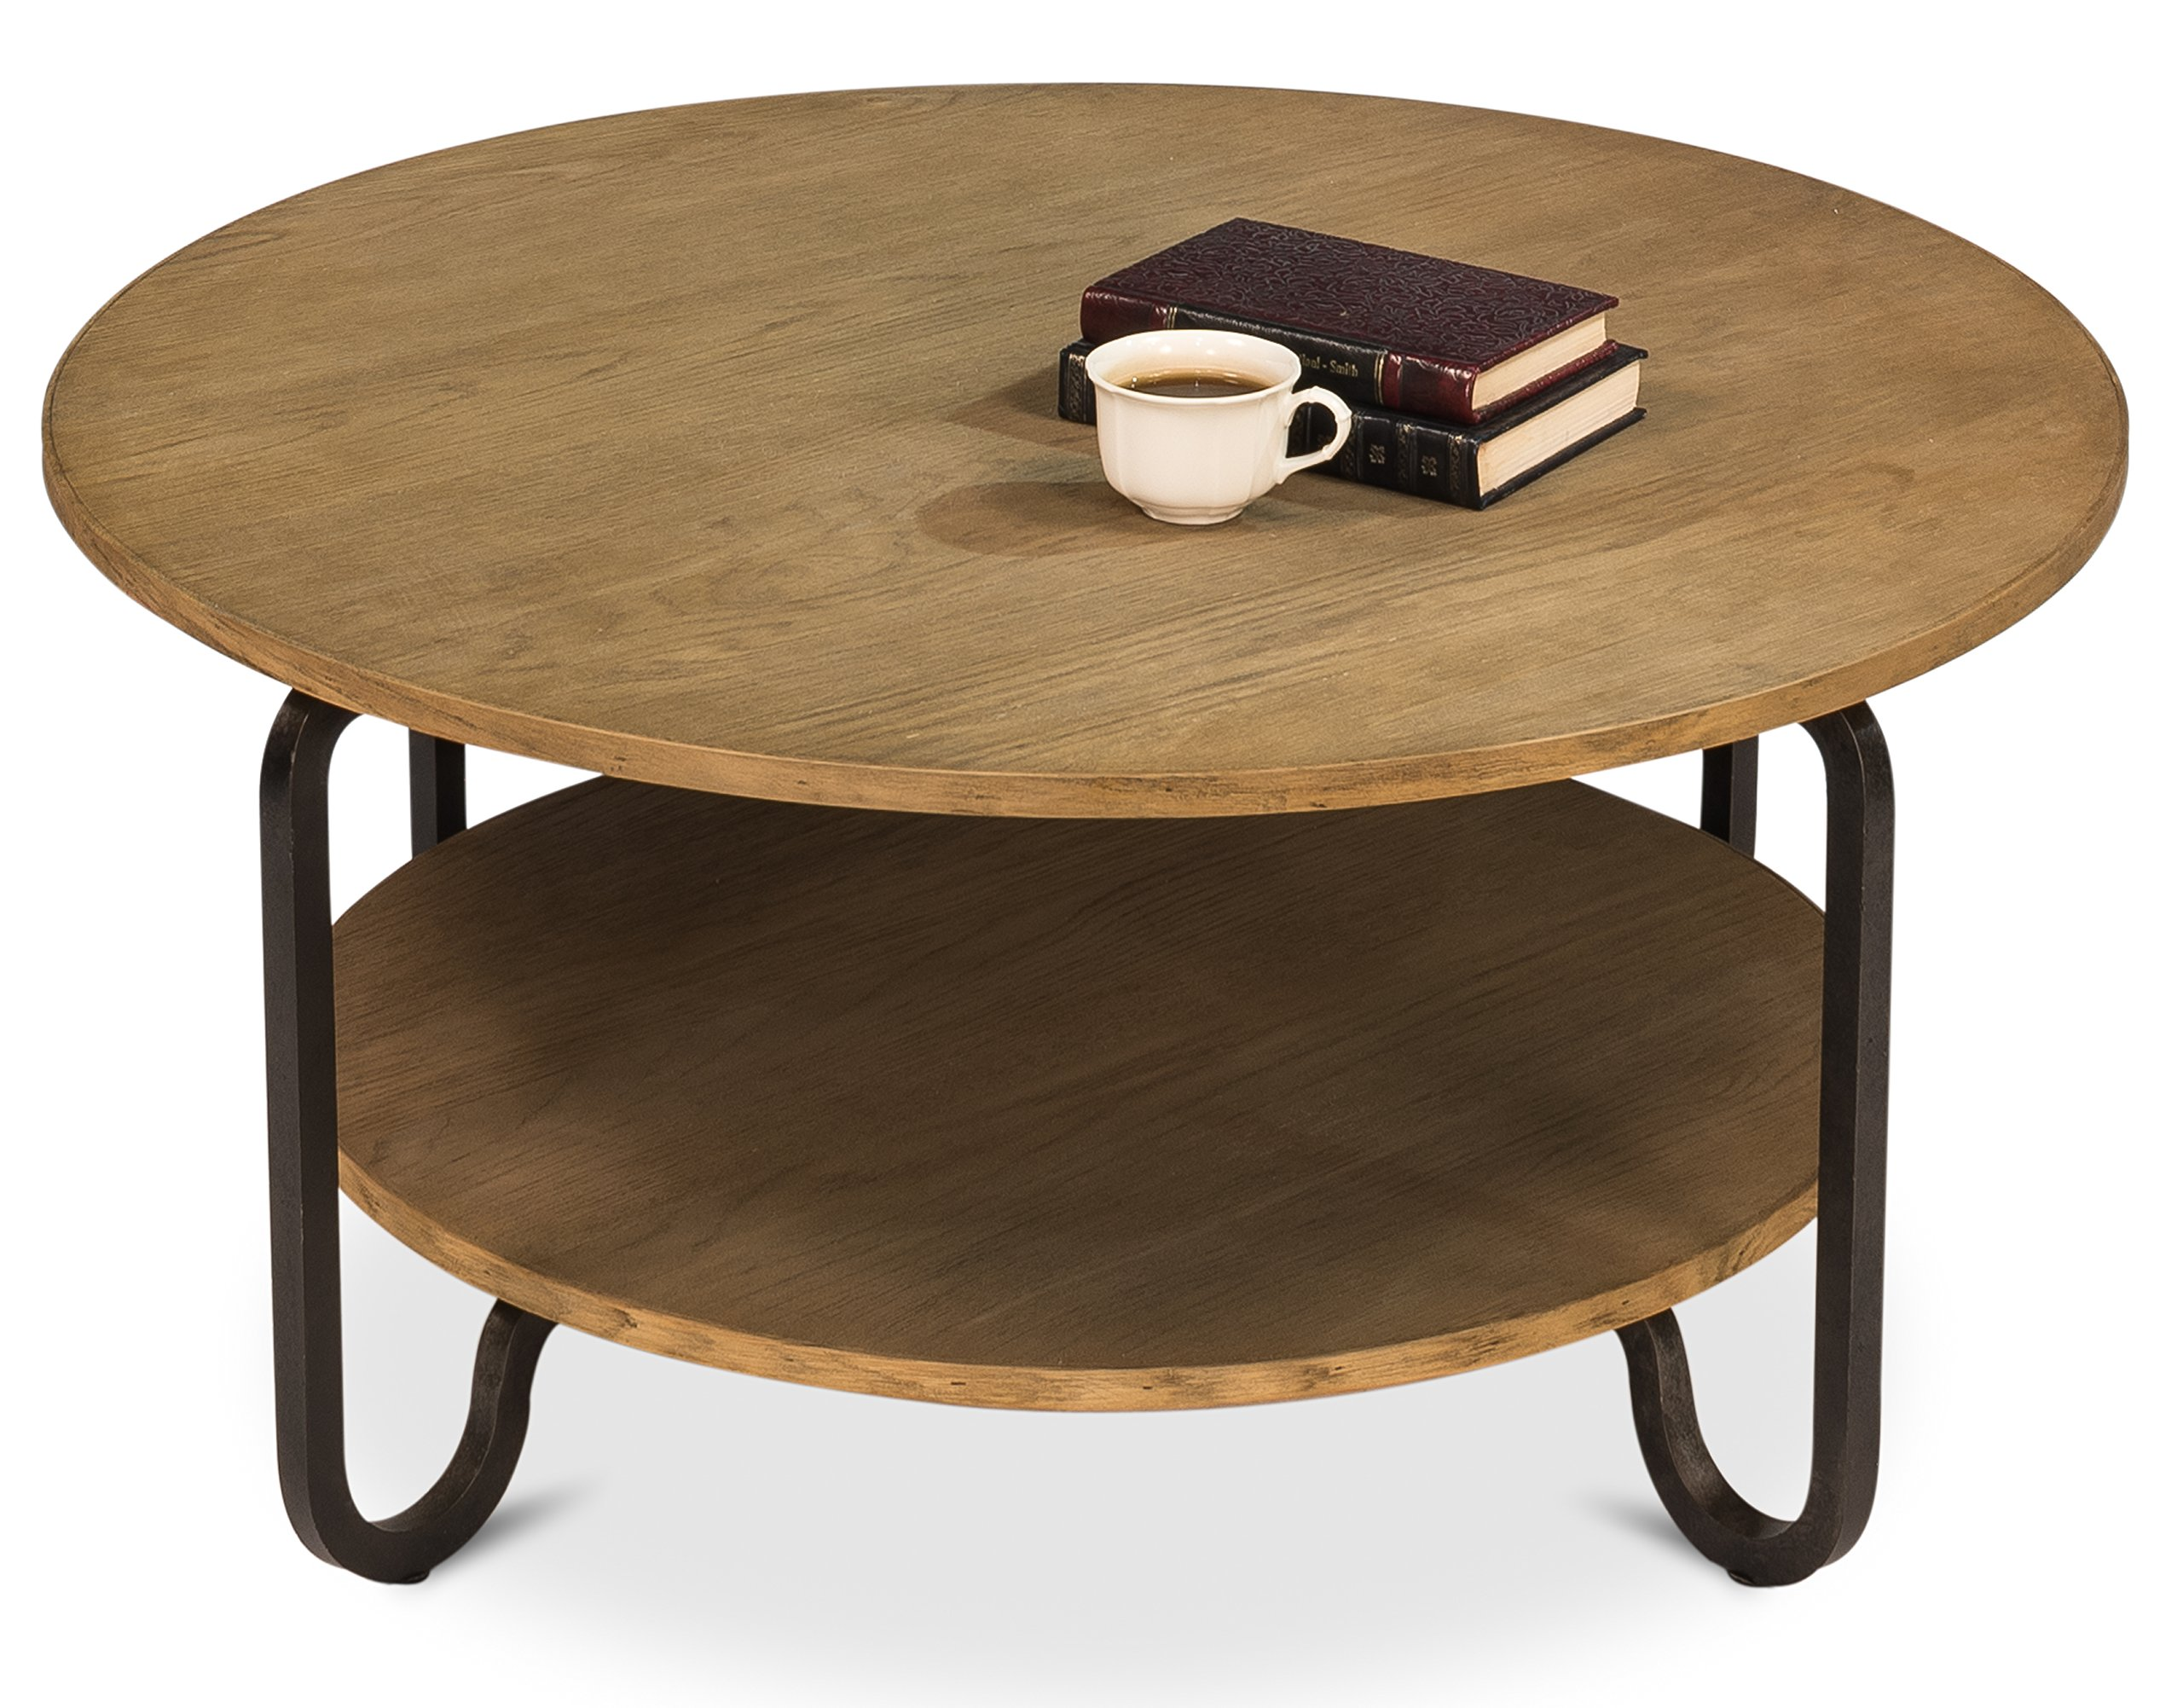 "Sarreid Hamilton Round Coffee Table - Made in China. Iron; rustic Black; one fixed shelf; Manufactures All Furniture Products Oak veneer Top bottom ; Bleached pine coffee ; tables ; furniture 35"" Depth x 16"" Height - living-room-furniture, living-room, coffee-tables - 91KAYkCu2aL -"